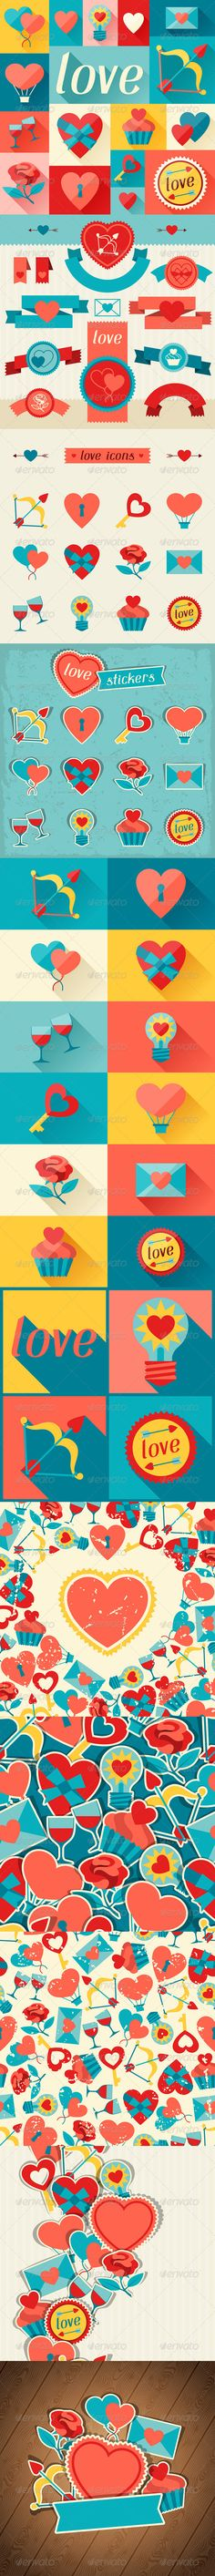 Valentine's and Wedding Backgrounds and Icons.  #GraphicRiver         Valentine's and Wedding backgrounds and icons.   Zip file contain fully editable EPS10 RGB vector files and high resolution pixels RGB Jpeg images. EPS files made using gradients, transparency. Does not contain blends, meshes. Files does not contain foreign objects such as outside assets, brushes, symbols, fonts, images or other resources. Objects in the files are distributed by organized layers. Contains the author's…